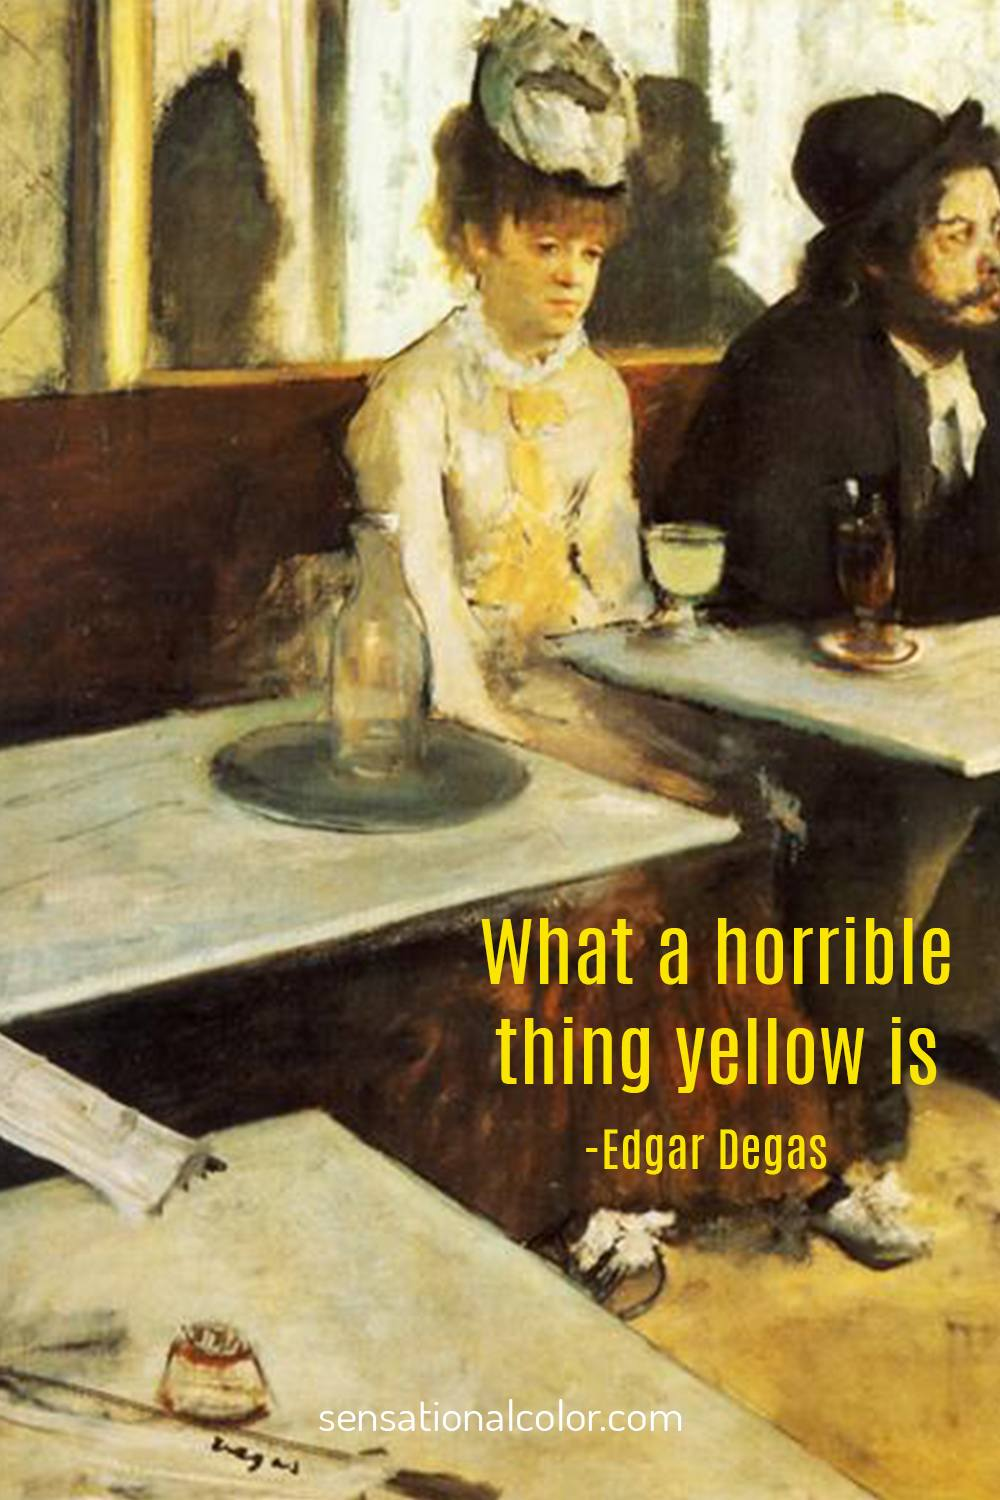 """What a horrible thing yellow is."" - Edgar Degas"